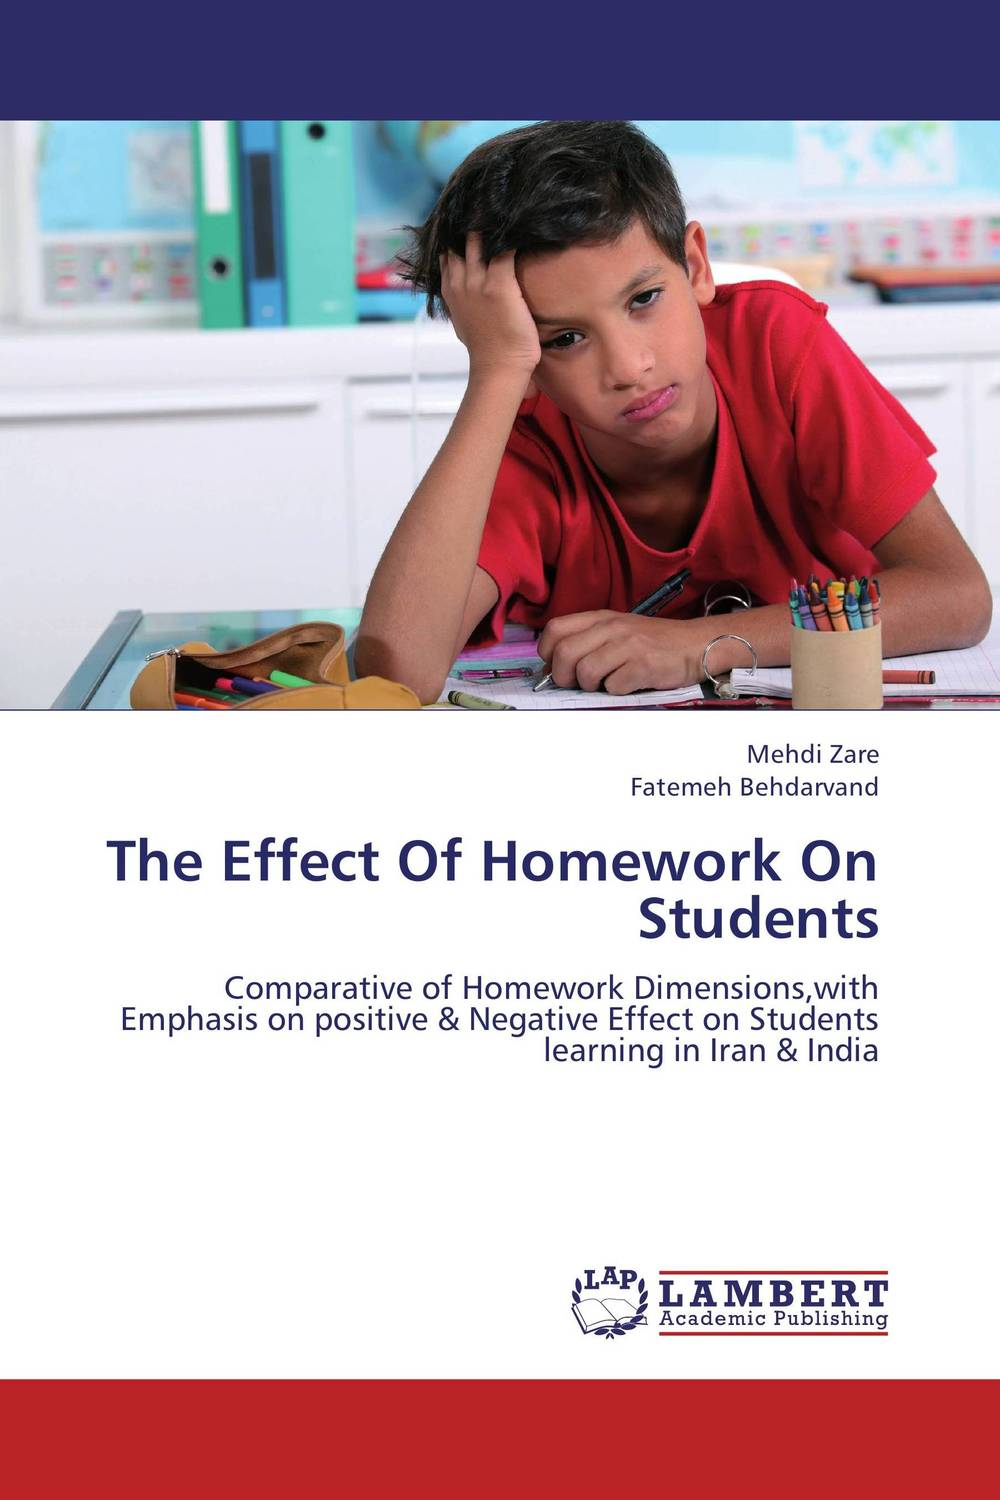 The Effect Of Homework On Students